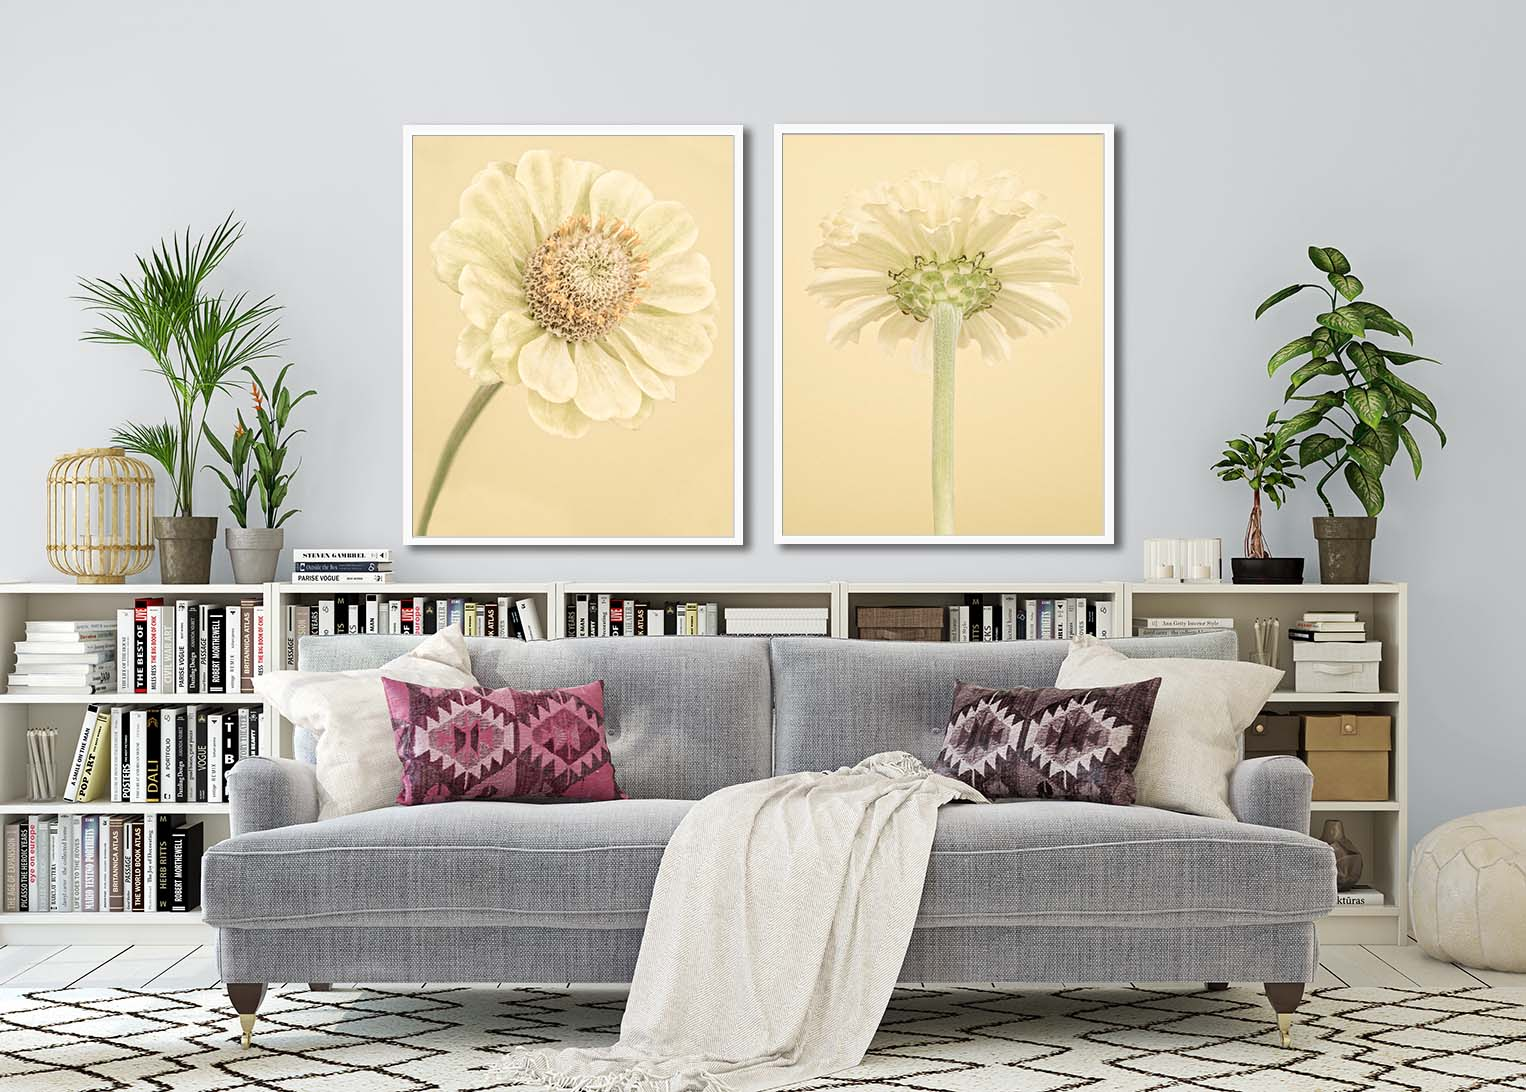 Pale Yellow Zinnia I + II. Limited edition botanical prints by fine art photographer Paul Coghlin